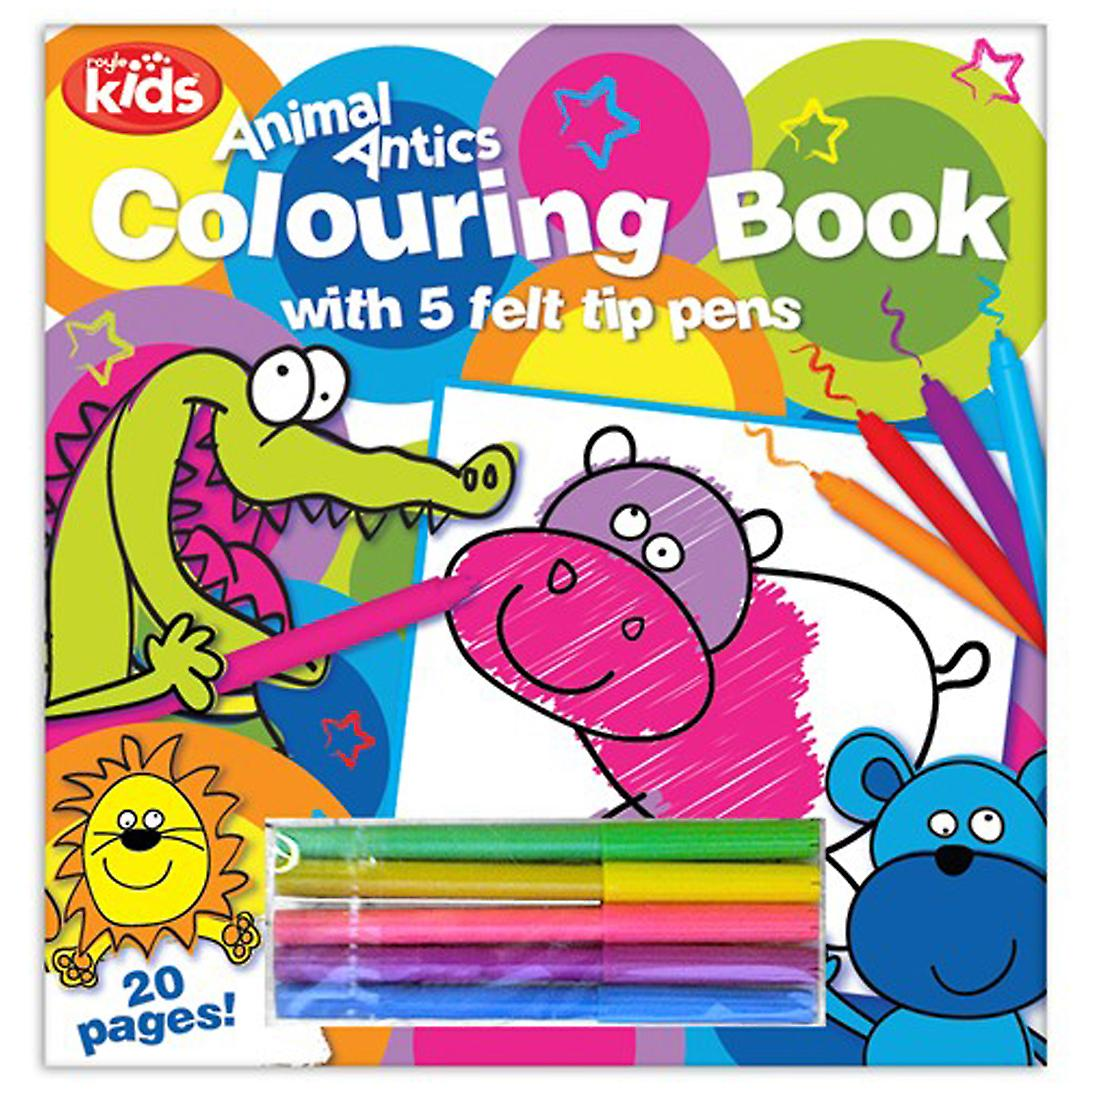 Kids Colouring Book 20 Page with Pack of 5 Felt Tip Pens Fun Travel Entertaining